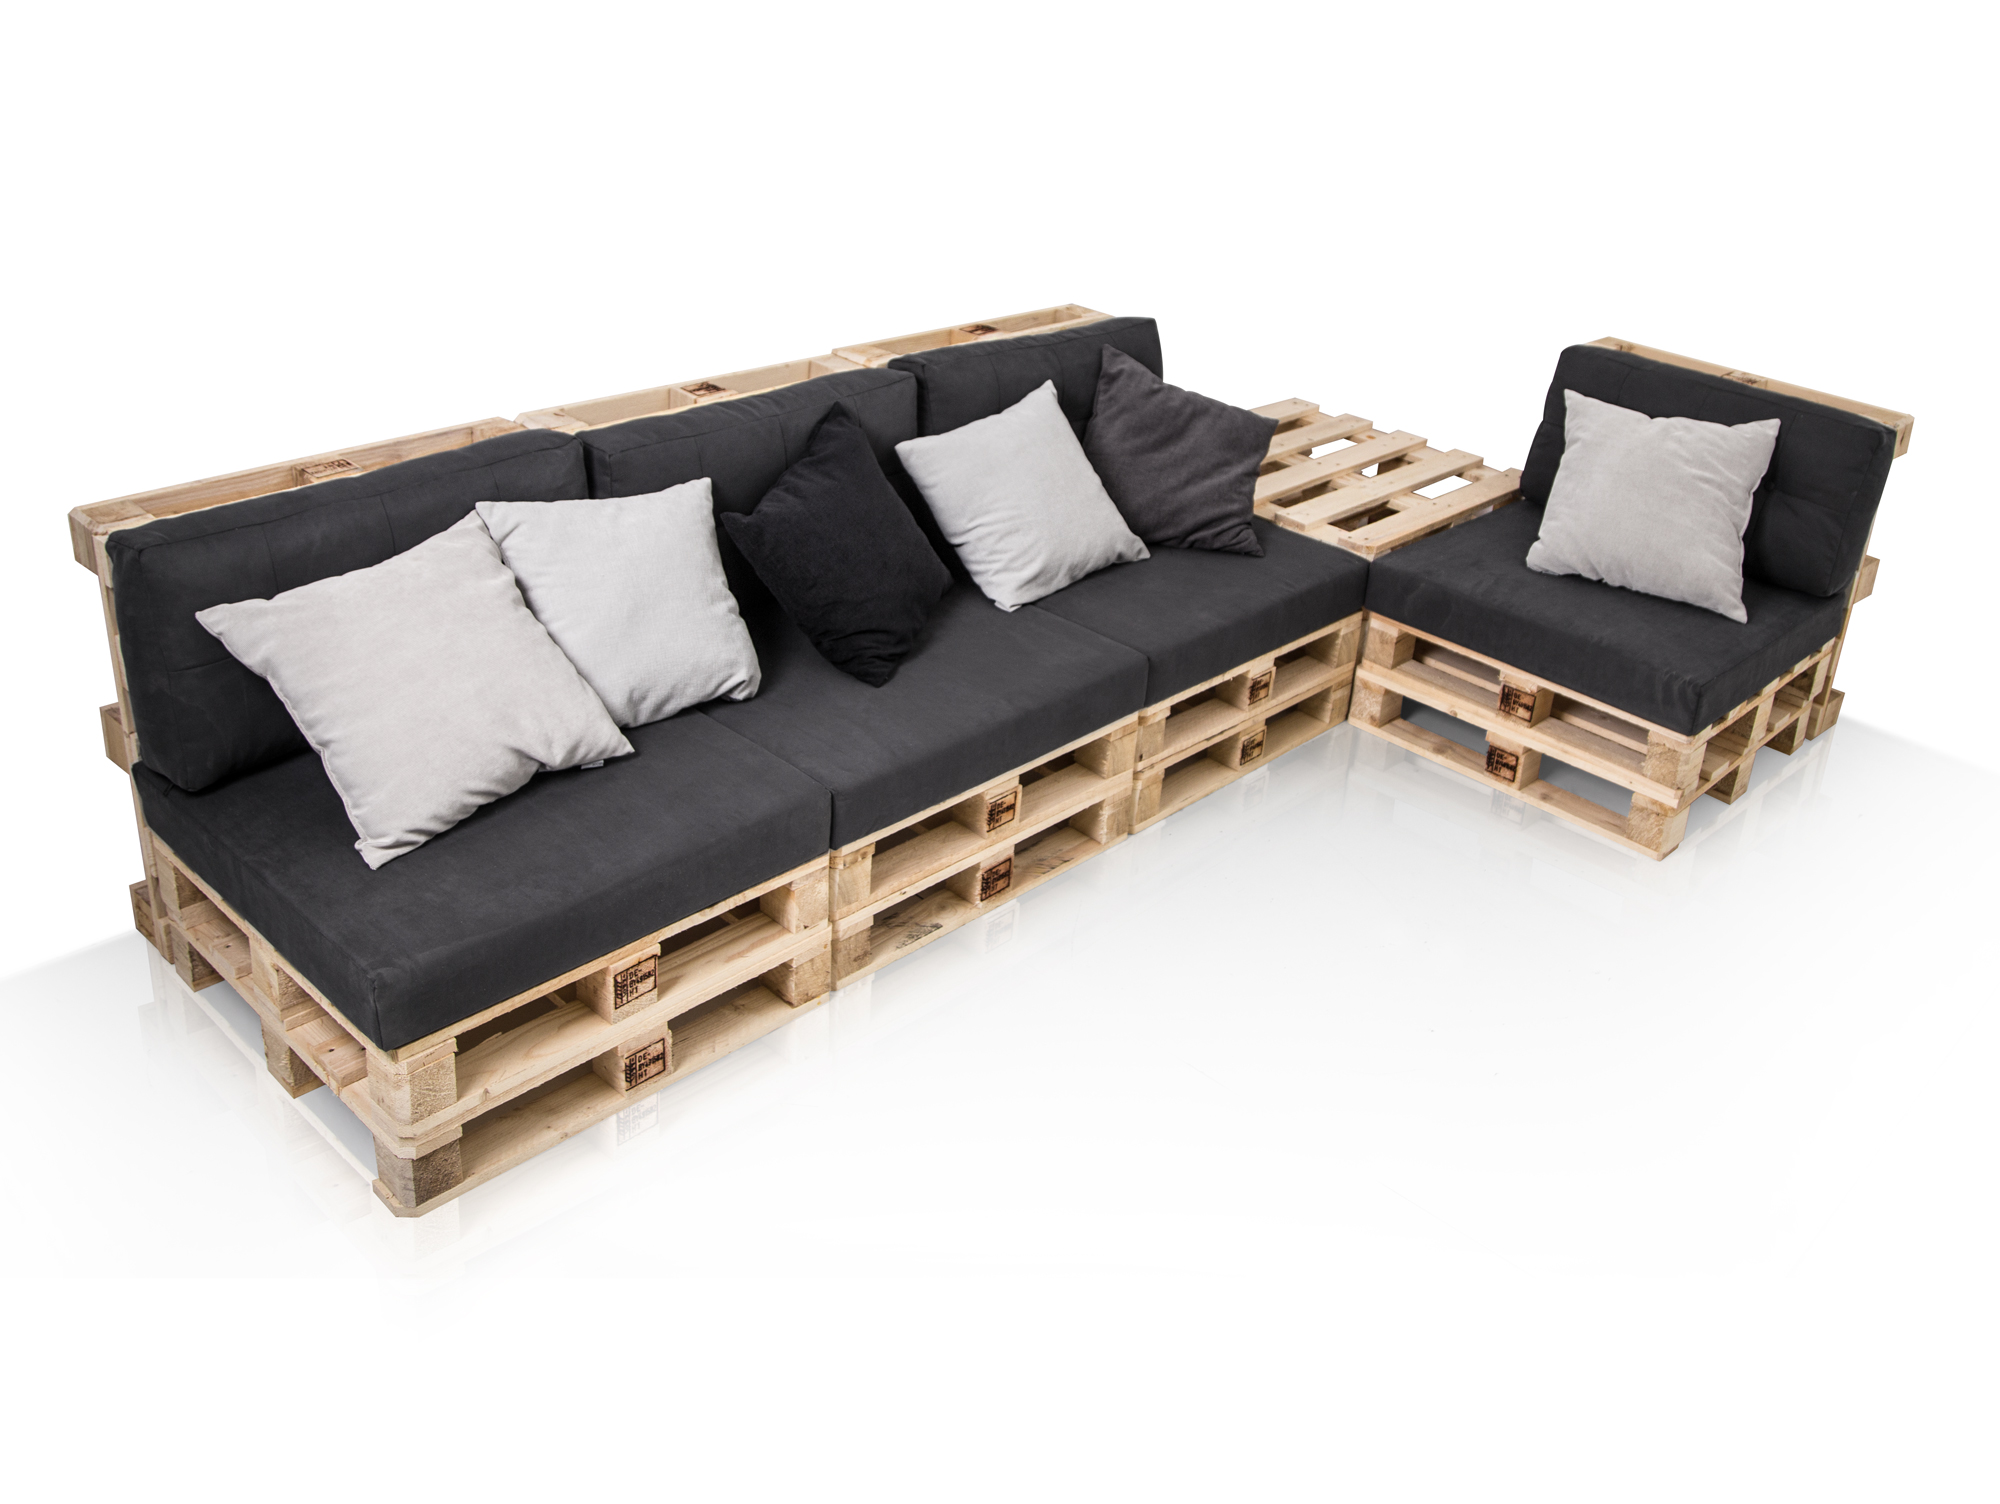 paletti sofalandschaft i sofa aus paletten fichte massiv fichte natur. Black Bedroom Furniture Sets. Home Design Ideas